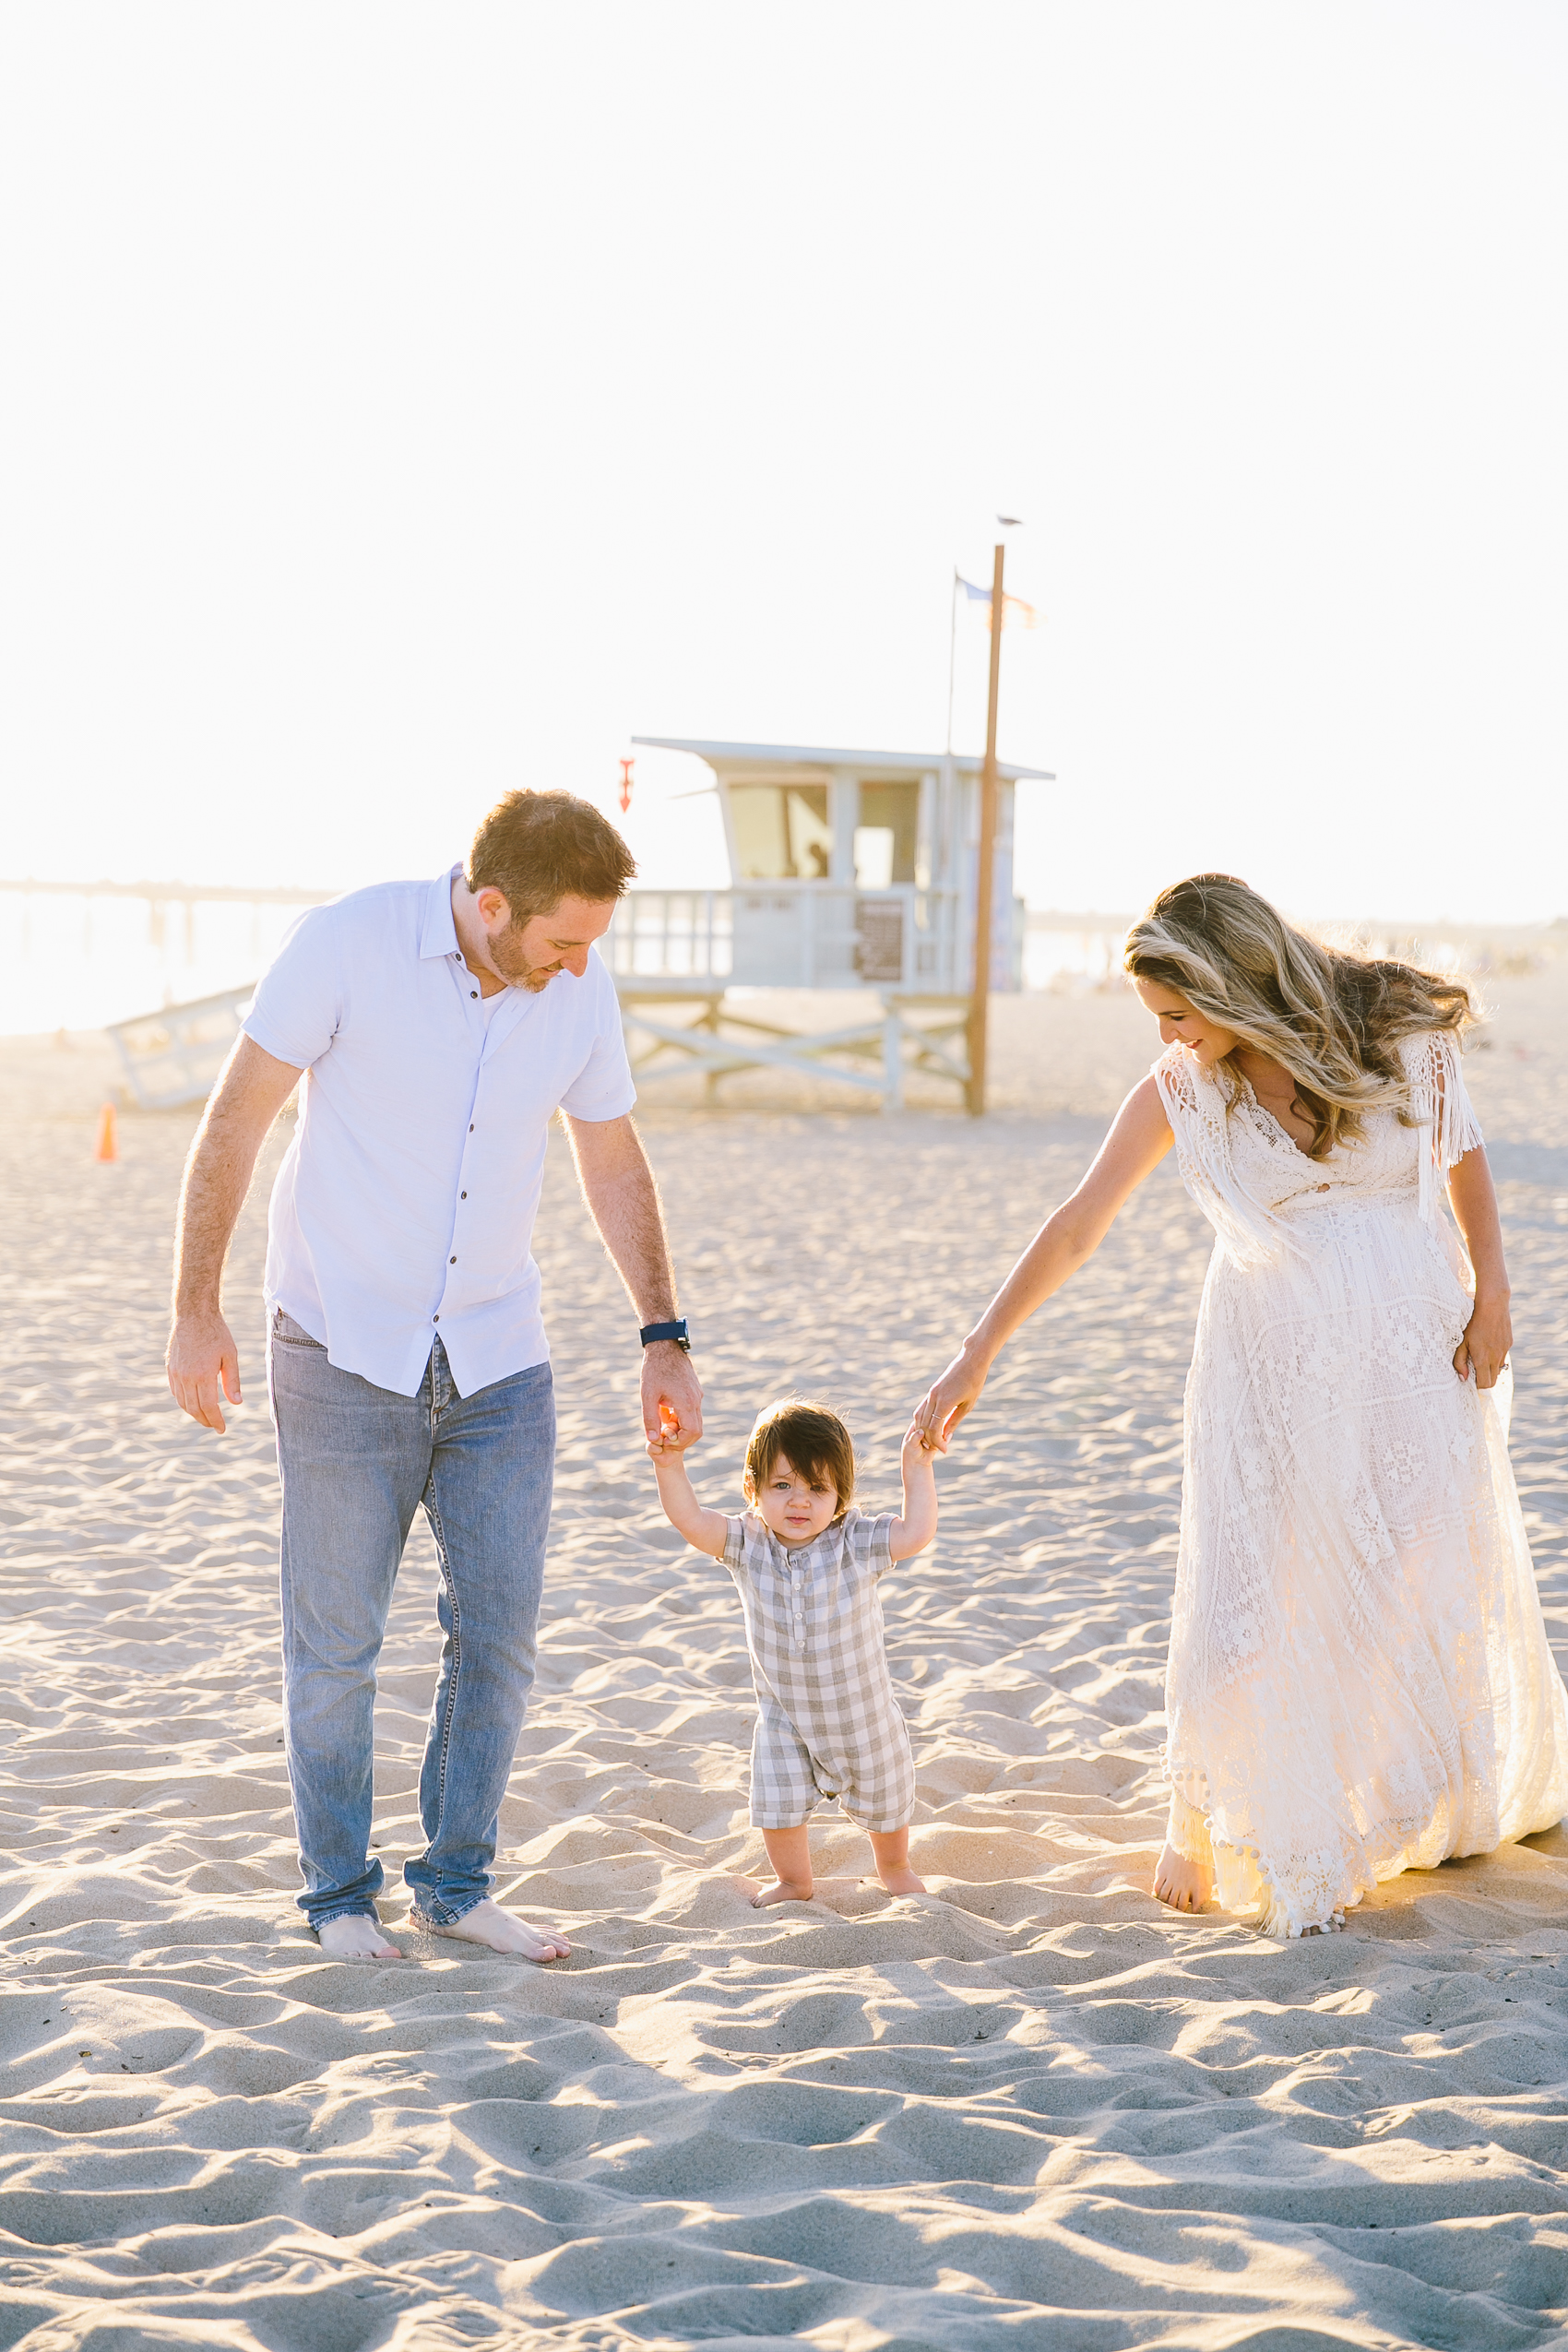 Los_Angeles_Family_Photographer_Maternity_Photos_Baby_Pregnancy_Venice_Beach_Golden_Hour-0500.jpg